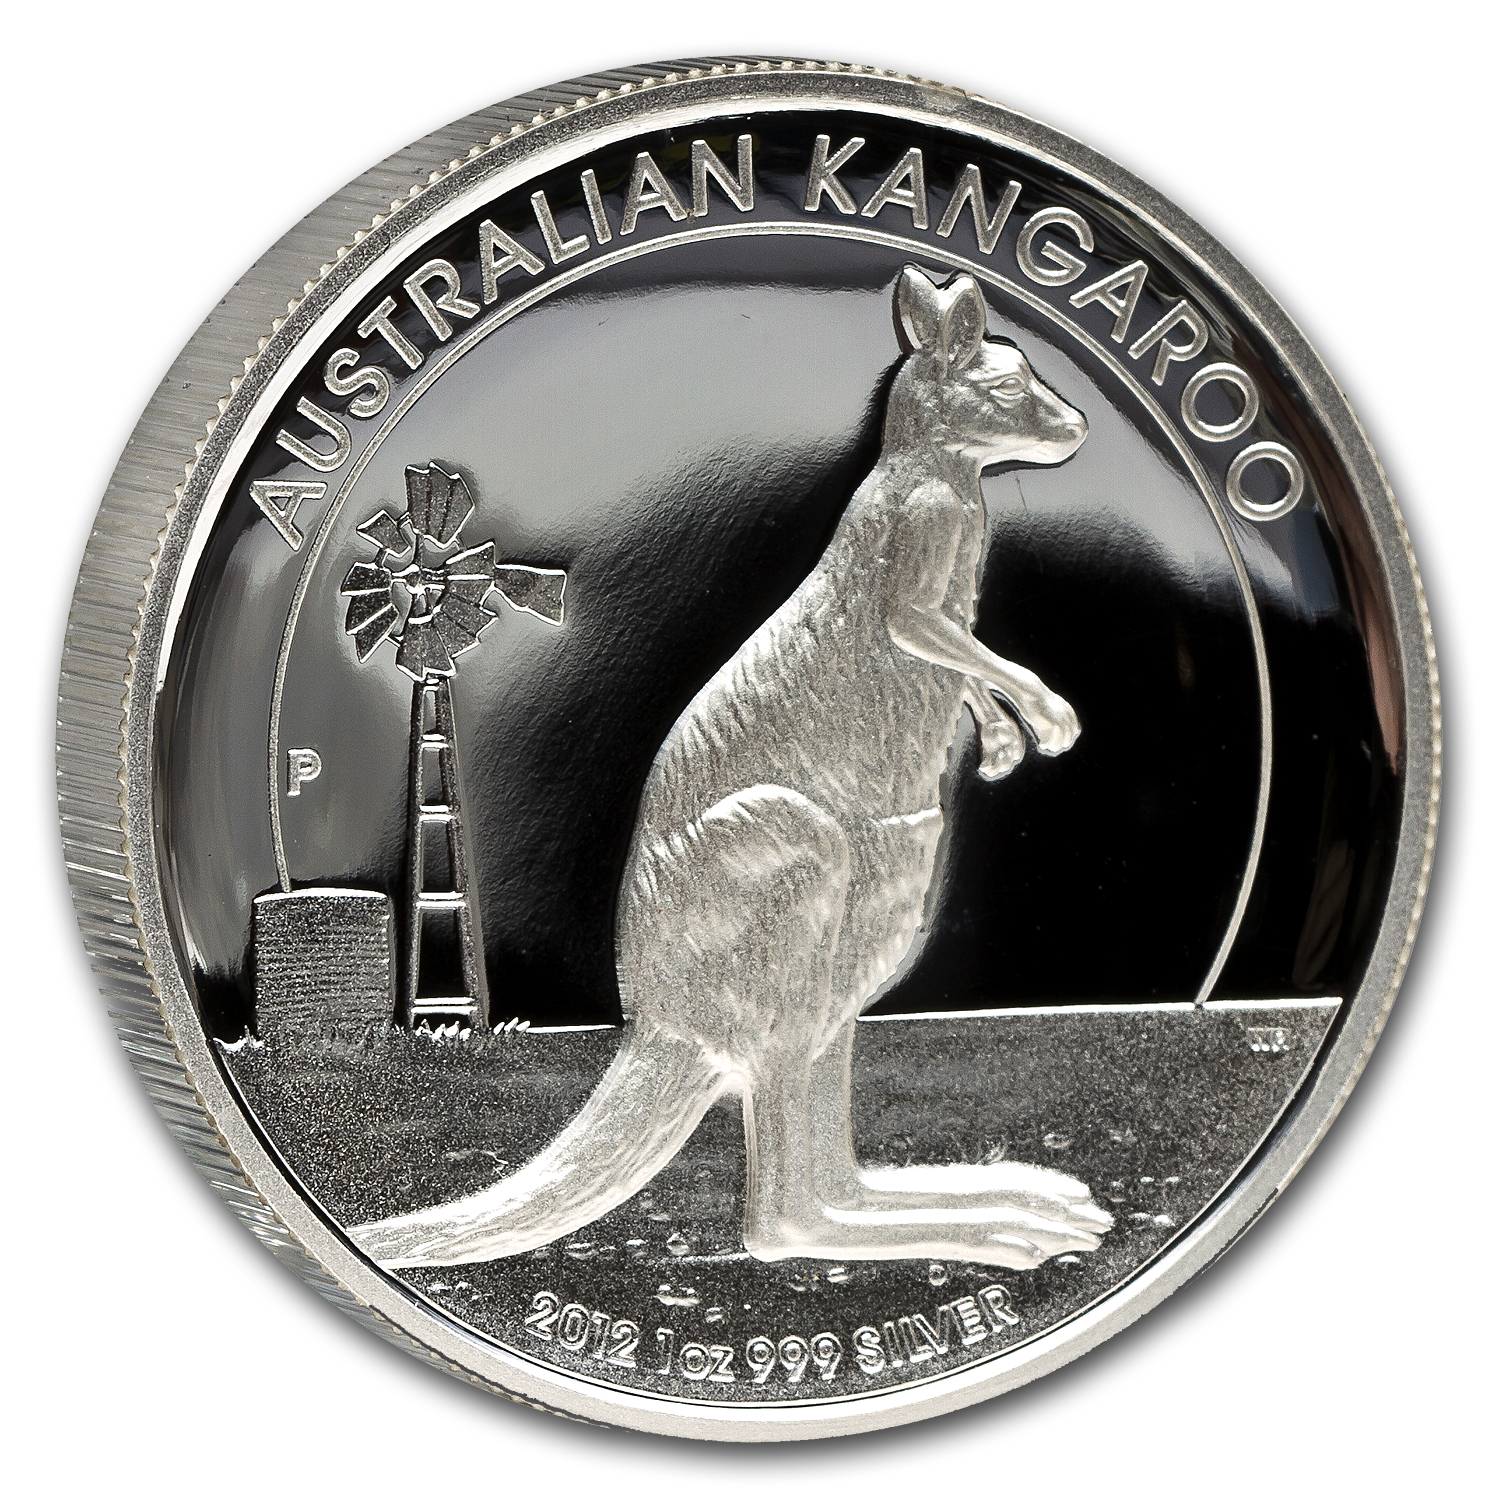 2012 Australia 1 oz Silver Kangaroo Proof (High Relief)